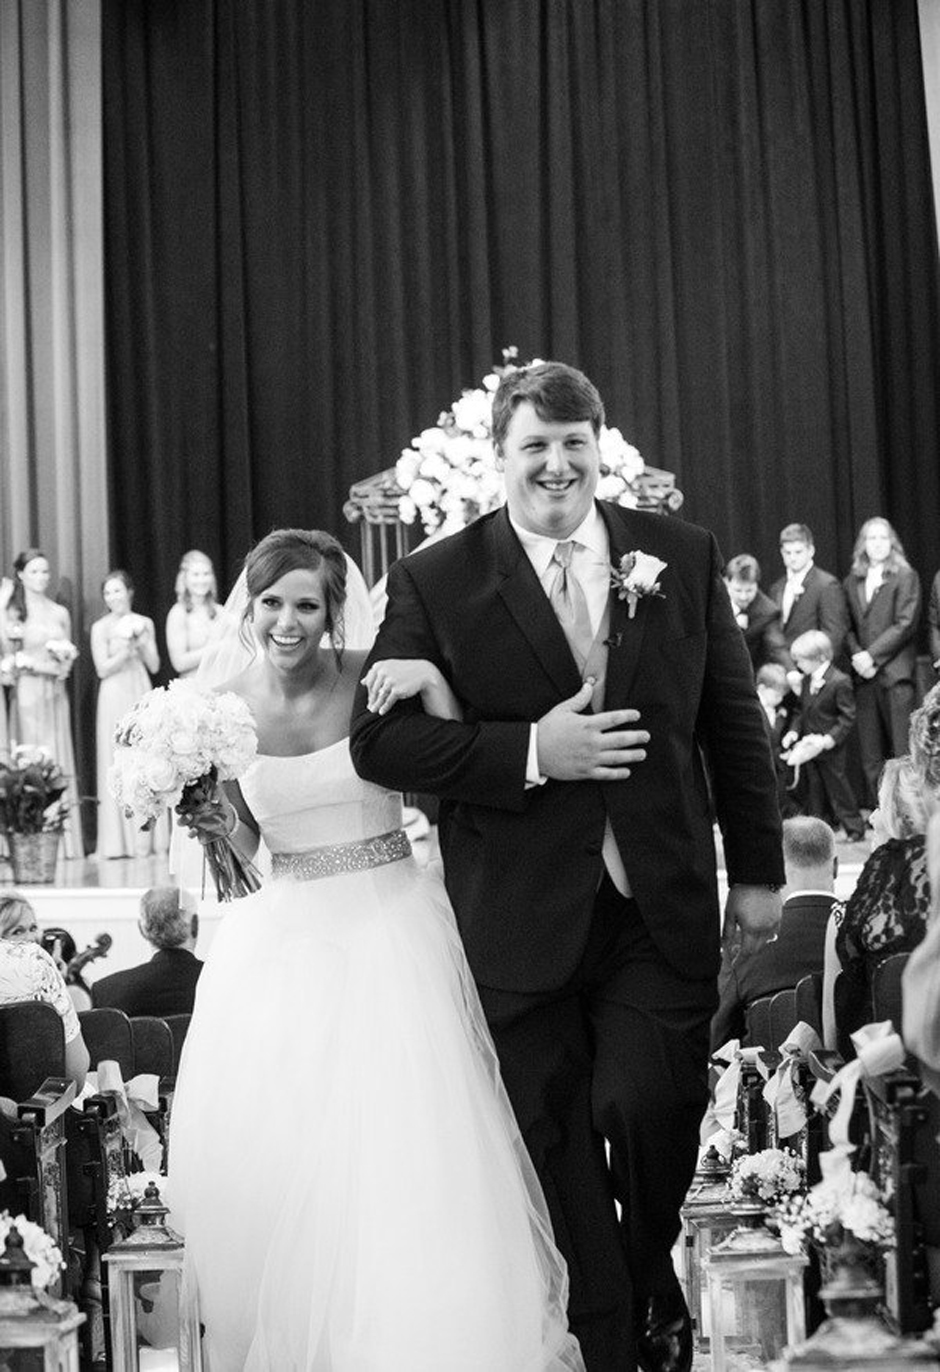 Houston Texans Player Ben Jones married at the University of Georgia campus chapel in July 2014 - Oconee Events used for rentals